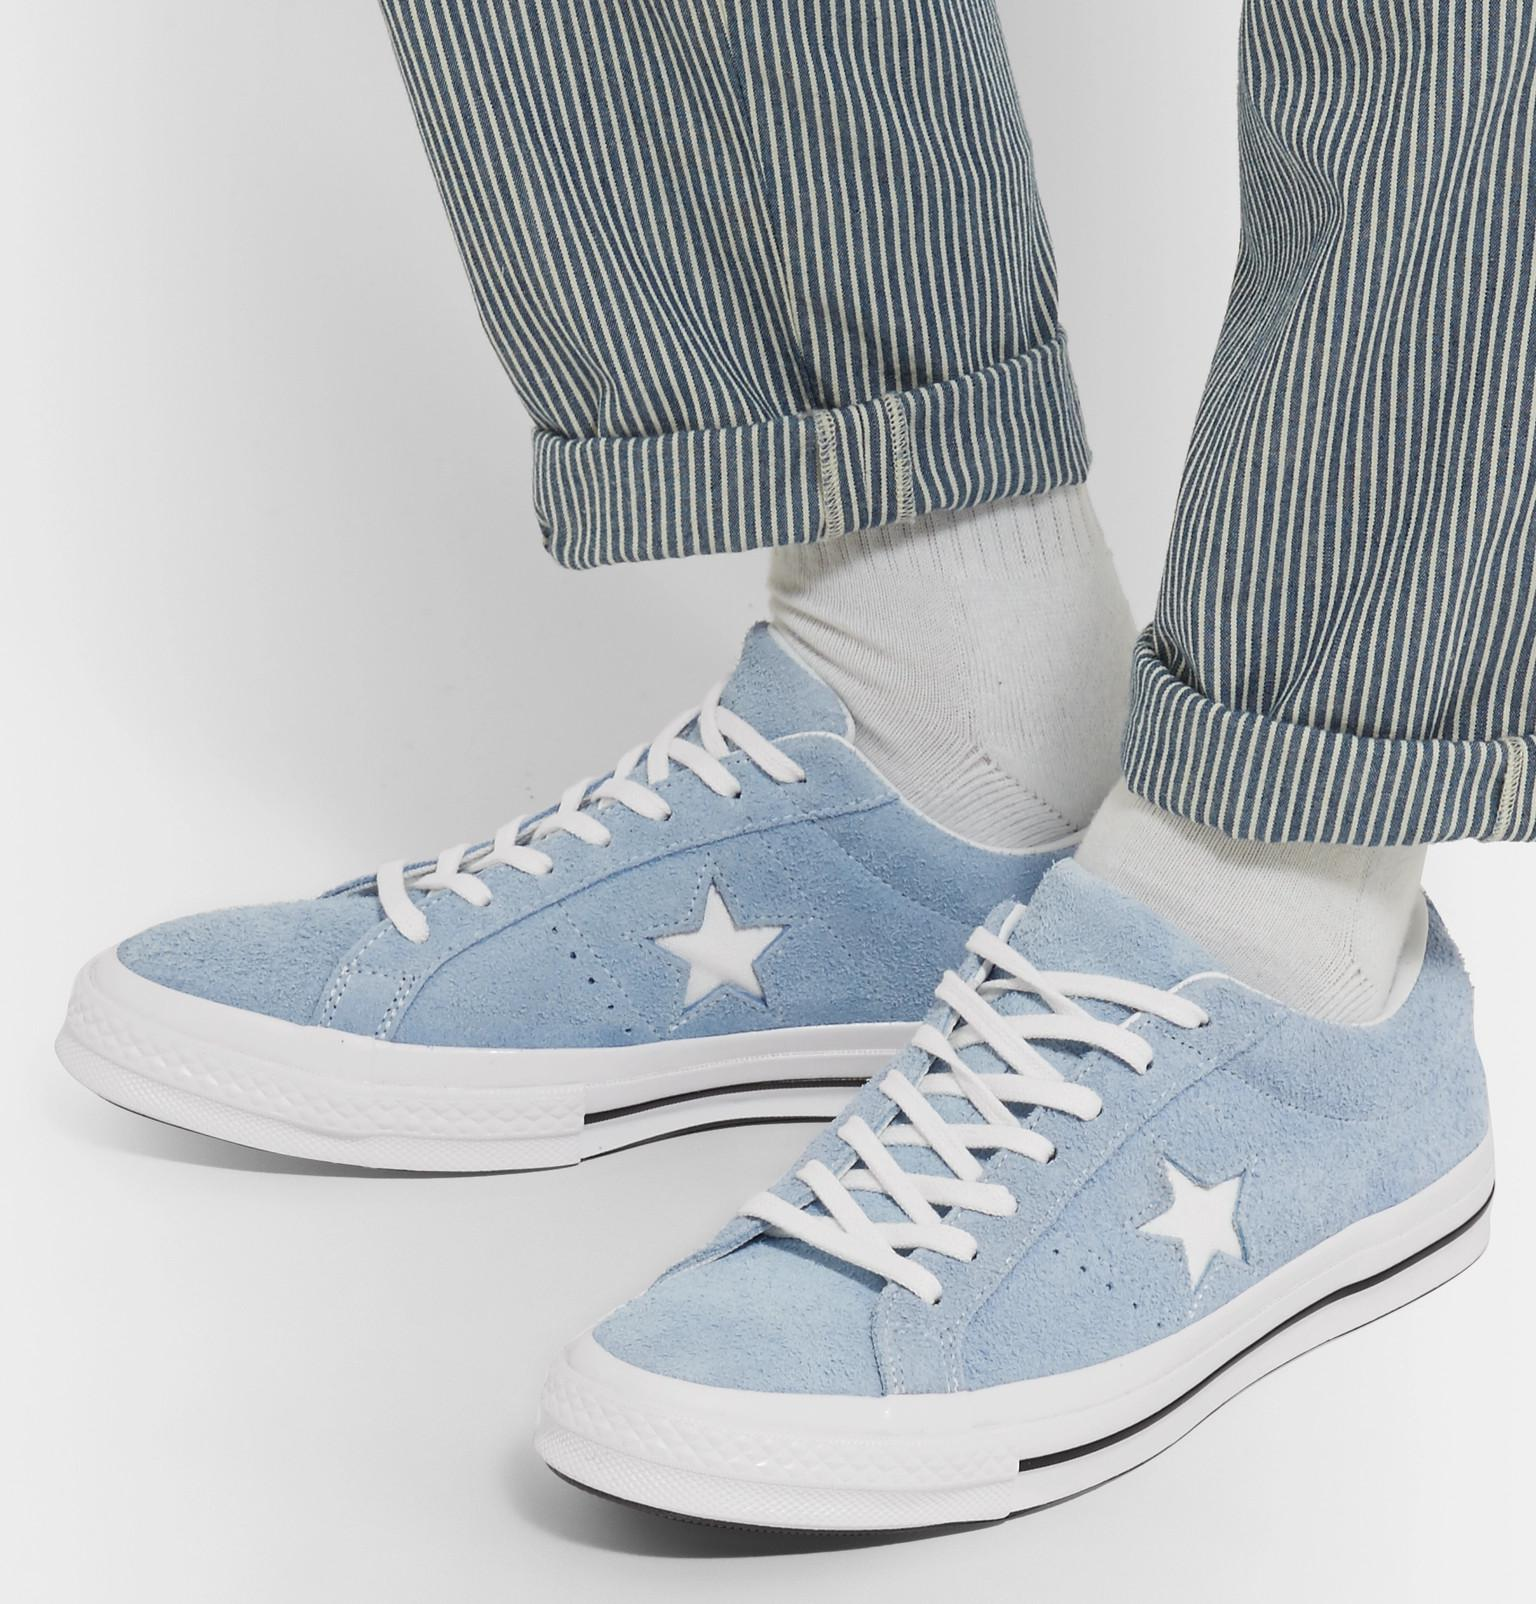 Converse One Star Ox Suede Sneakers in Light Blue (Blue) for Men ...